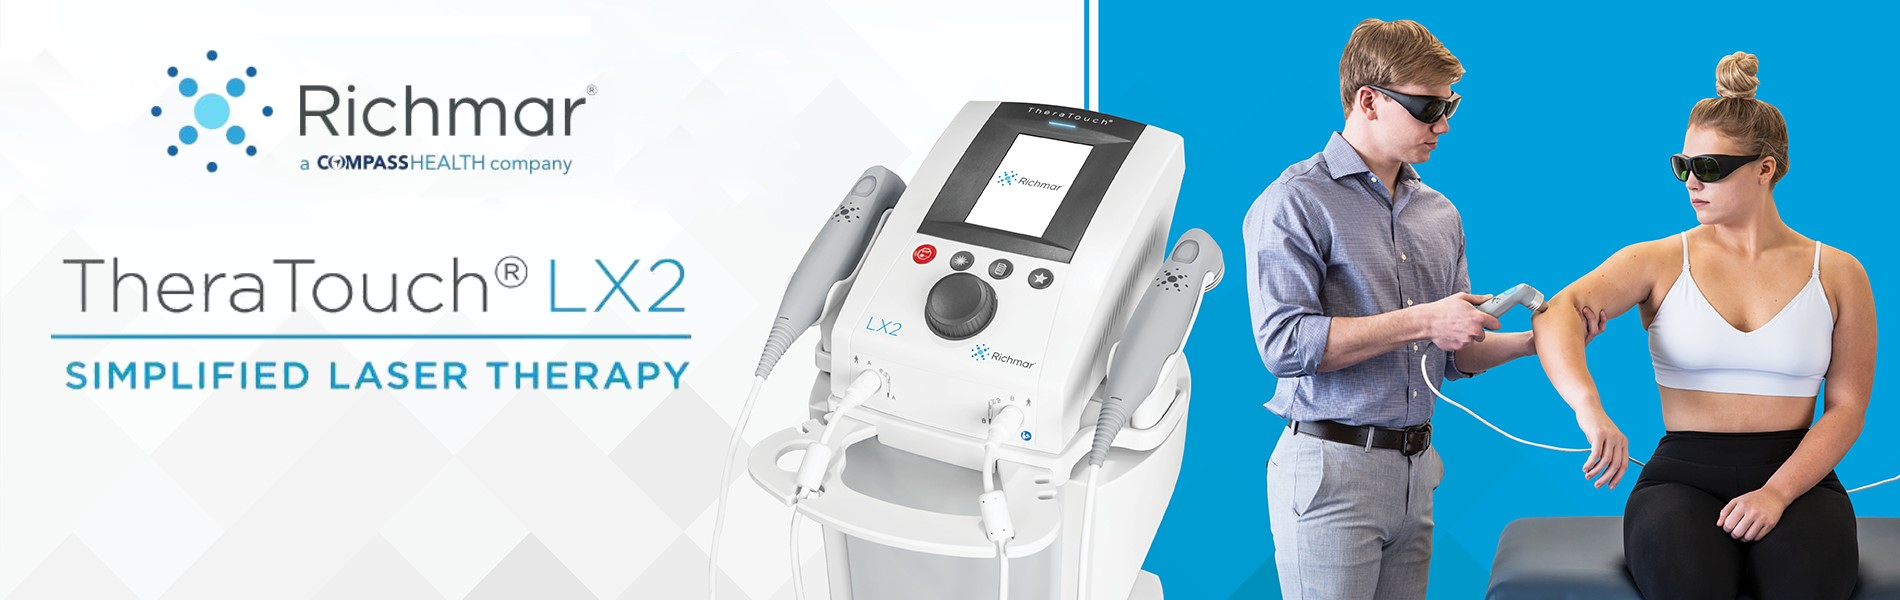 Richmar TheraTouch LX2 Cold Laser Therapy Unit